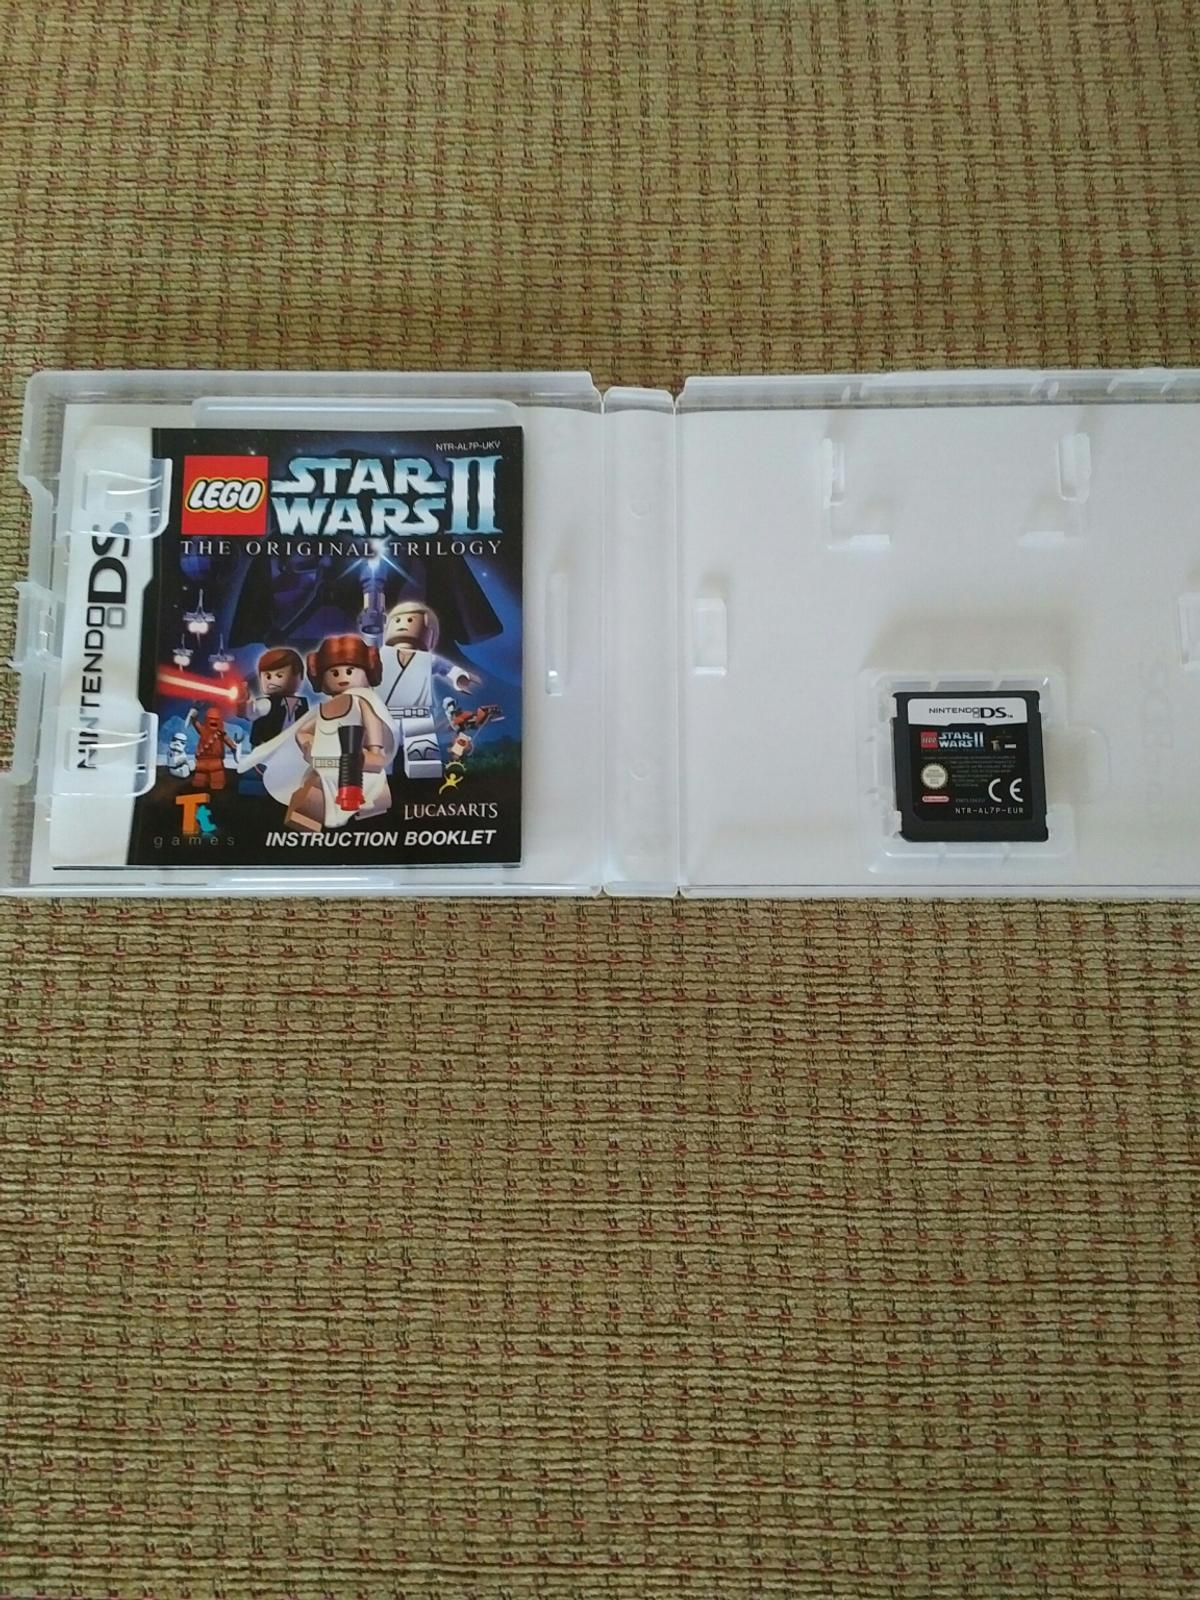 Nintendo DS game Lego Star Wars II the original trilogy aged 3 plus in original box with instructions.